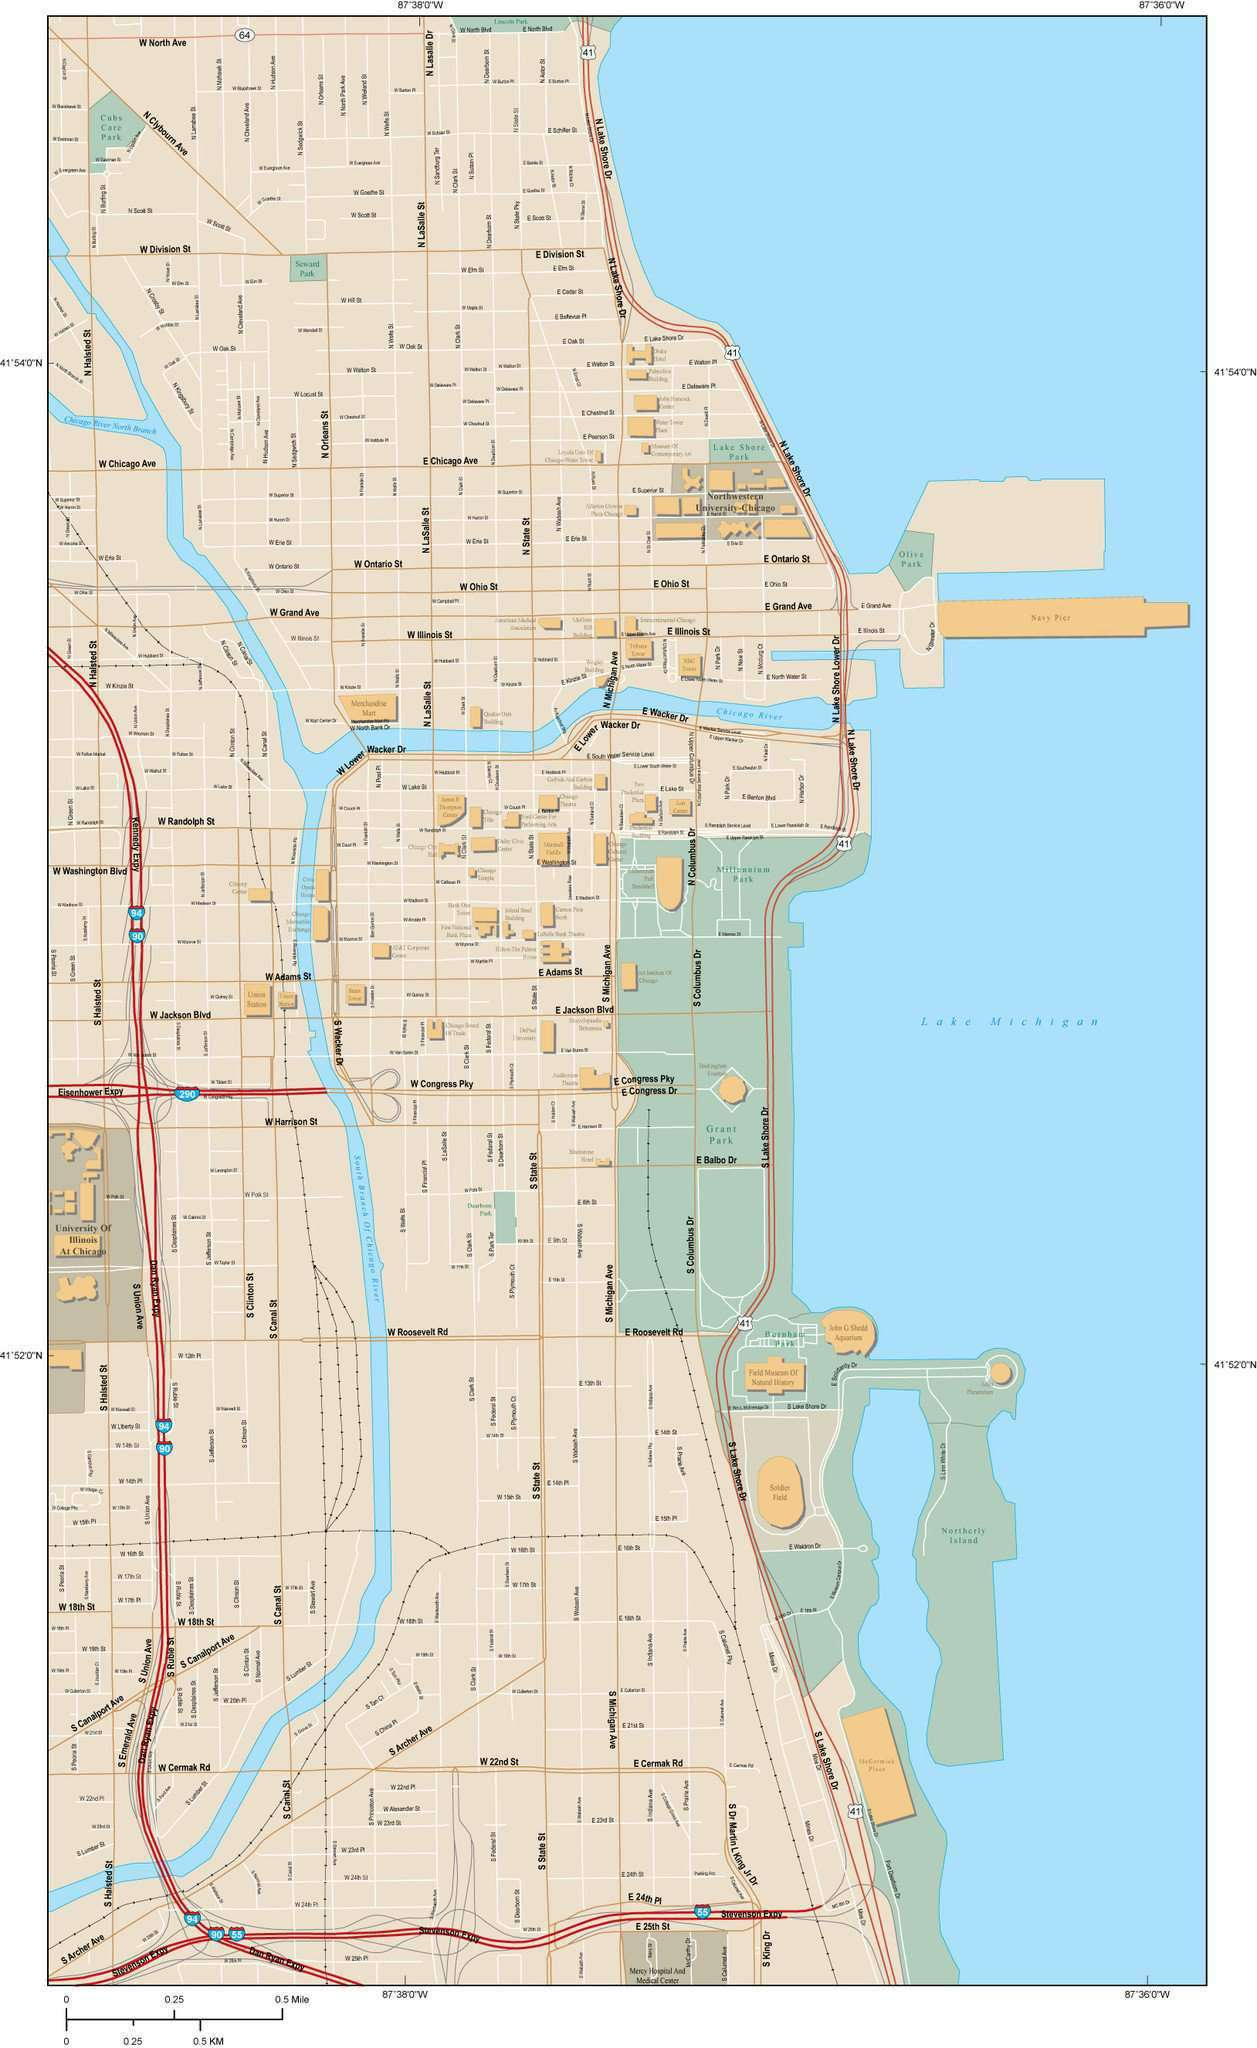 Chicago IL Map - City Center with Local Streets – Map Resources